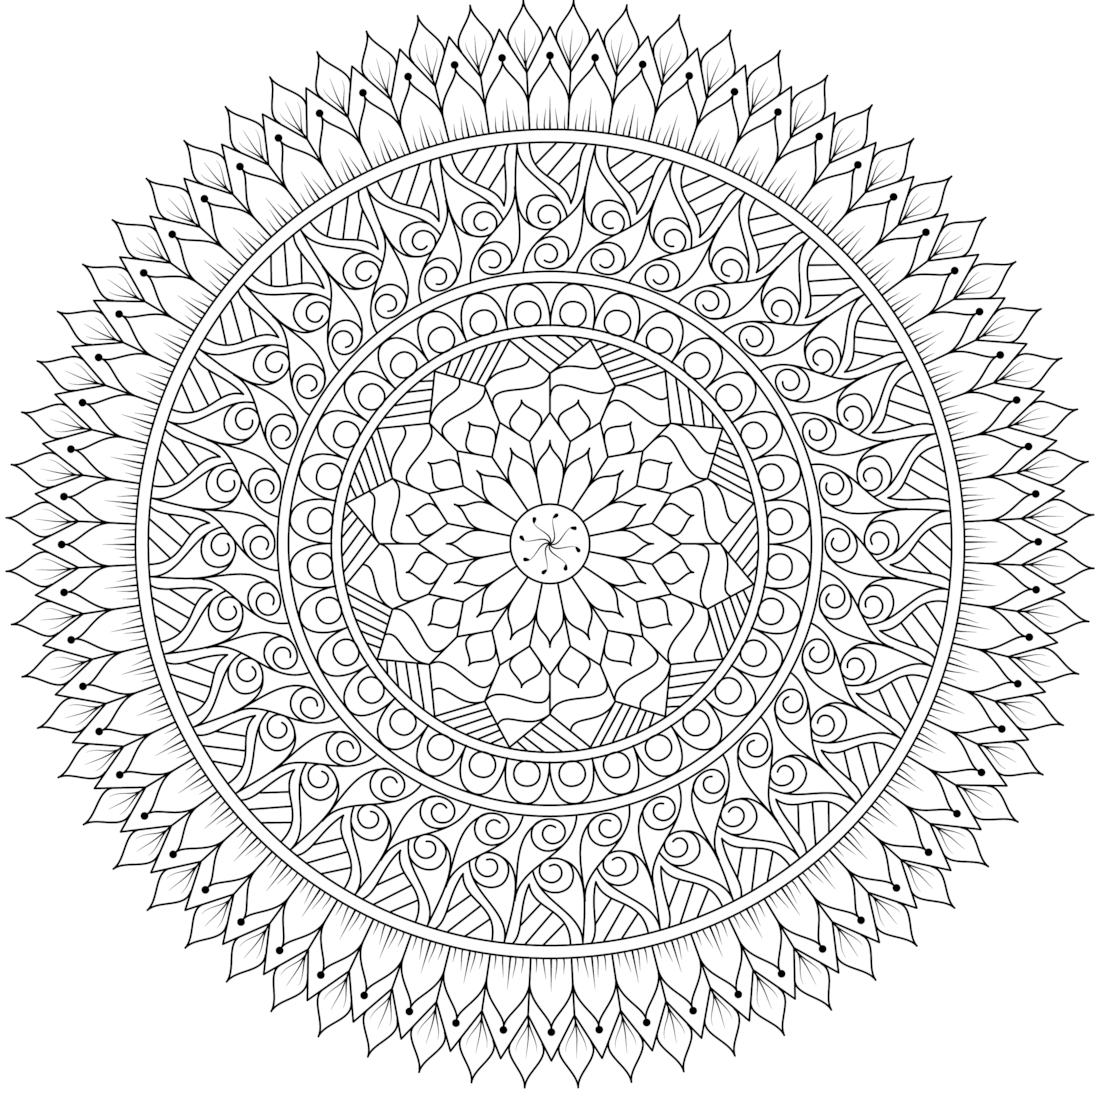 detailed coloring pages for adults - detailed coloring pages for adults